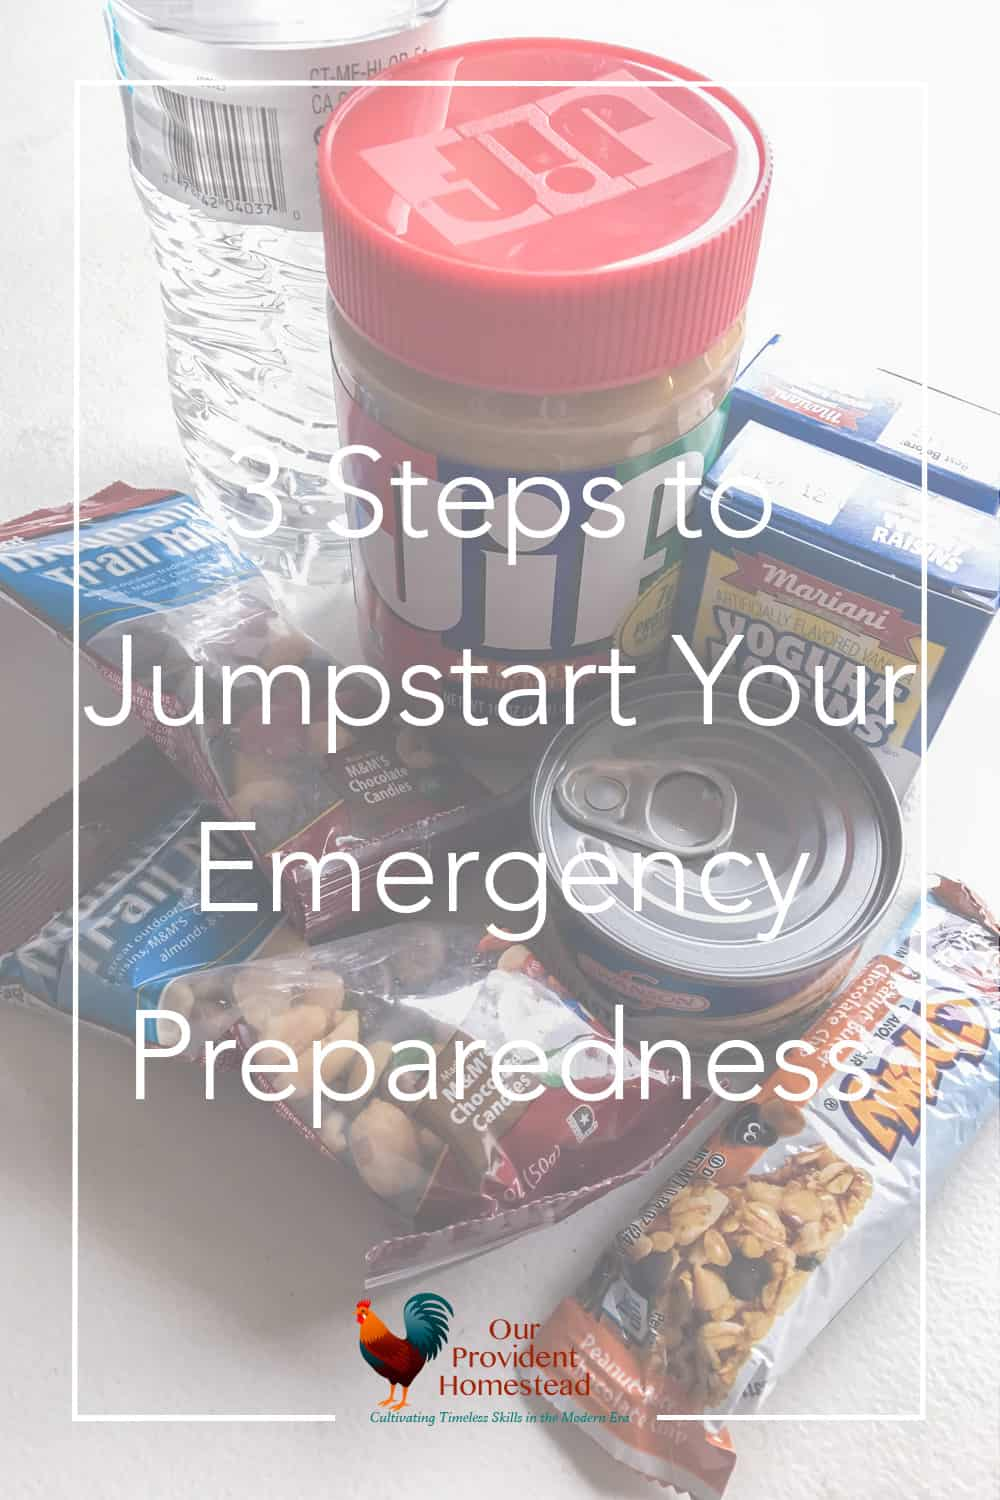 Are you prepared for an emergency in your home? We cover three ways you can get started with emergency preparedness so your family will be ready. Emergency Preparedness | 72 Hour Kit | Photo Backup